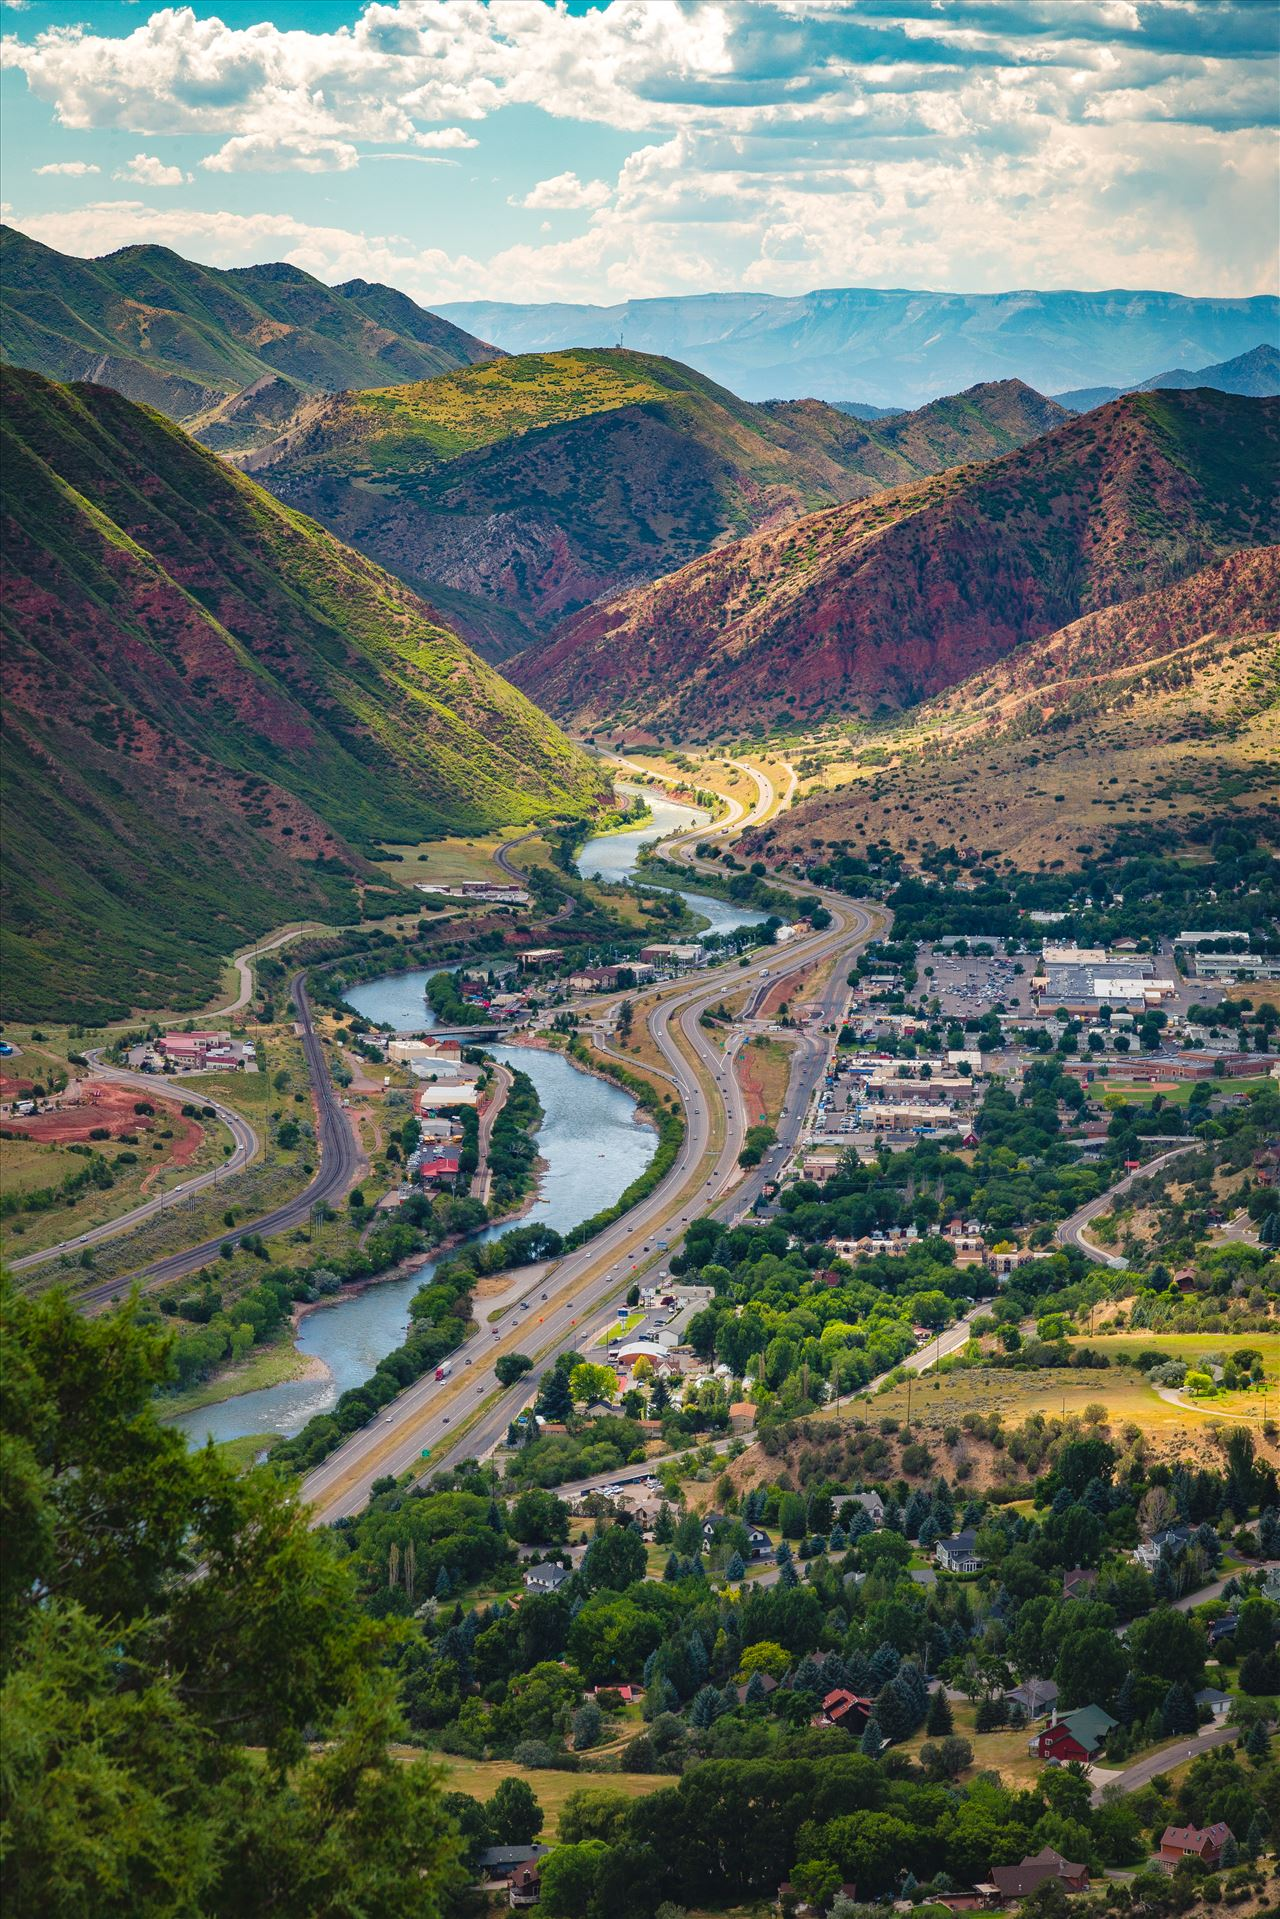 Glenwood Springs from Glenwood Caverns No 1 - Looking down from the top of Glenwood Caverns, the city of Glenwood Springs, Colorado looks miniature. by D Scott Smith